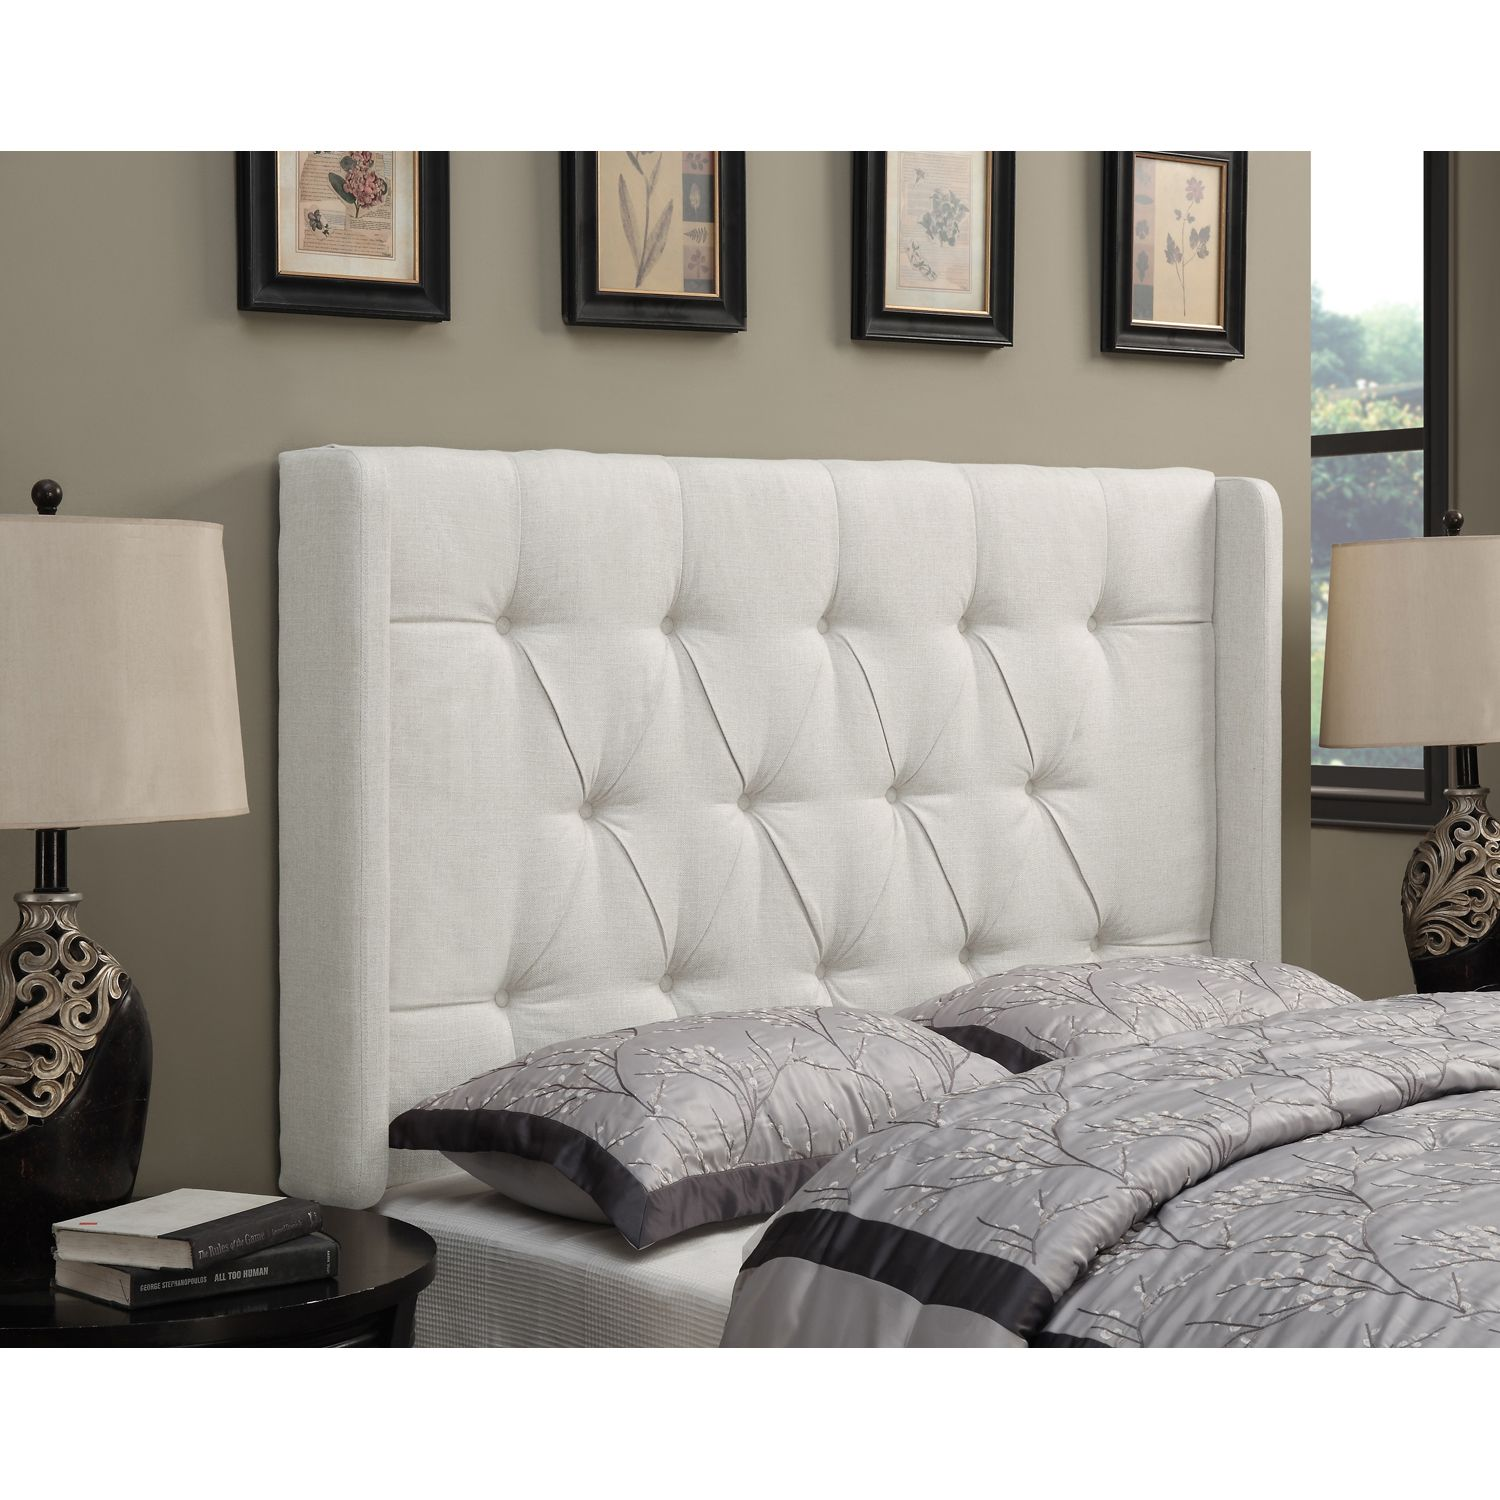 Button Tufted Upholstered Full/queen Headboard Linen